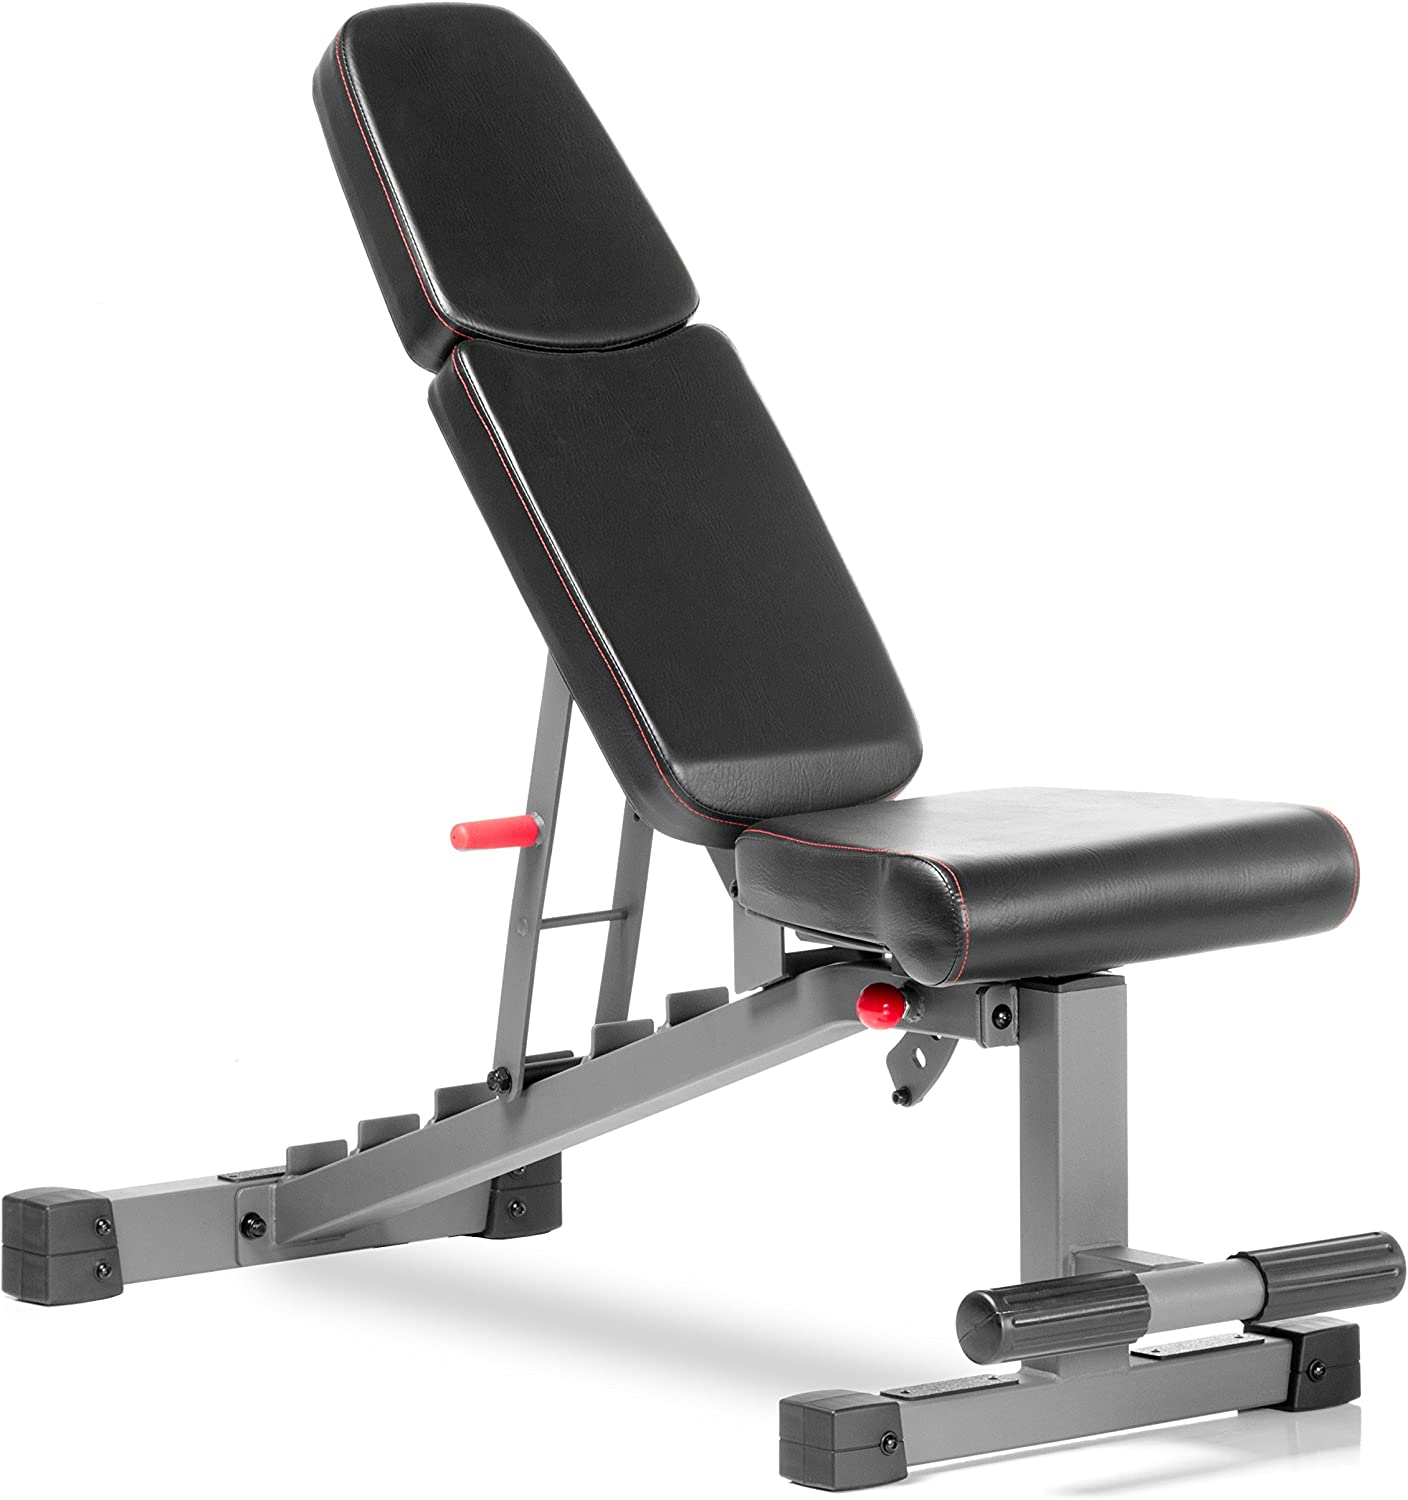 XMark-Commercial-Flat-Incline-Decline-Weight-Bench